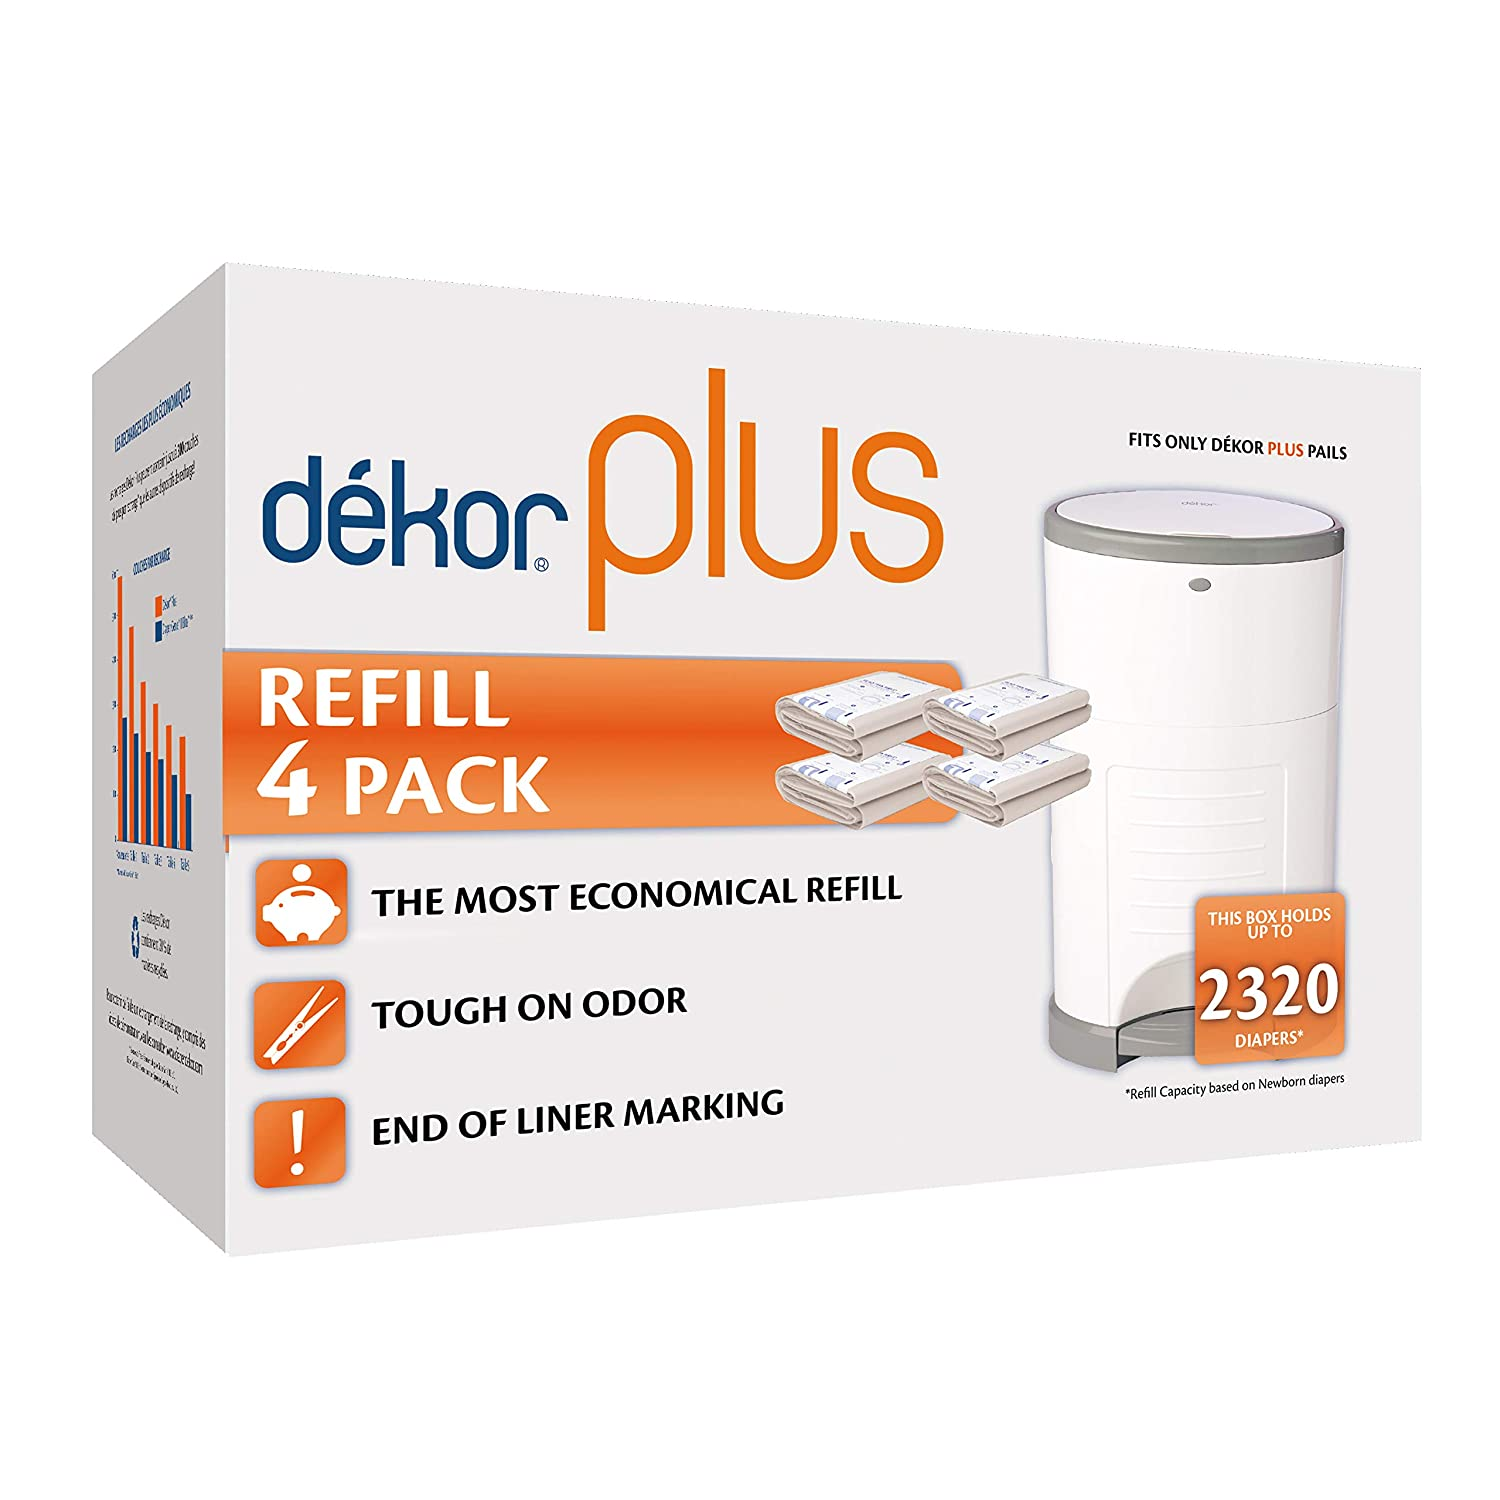 Dekor Plus Diaper Pail Refills | 4 Count | Most Economical Refill System | Quick & Easy to Replace | No Preset Bag Size – Use Only What You Need | Exclusive End-of-Liner Marking | Baby Powder Scent